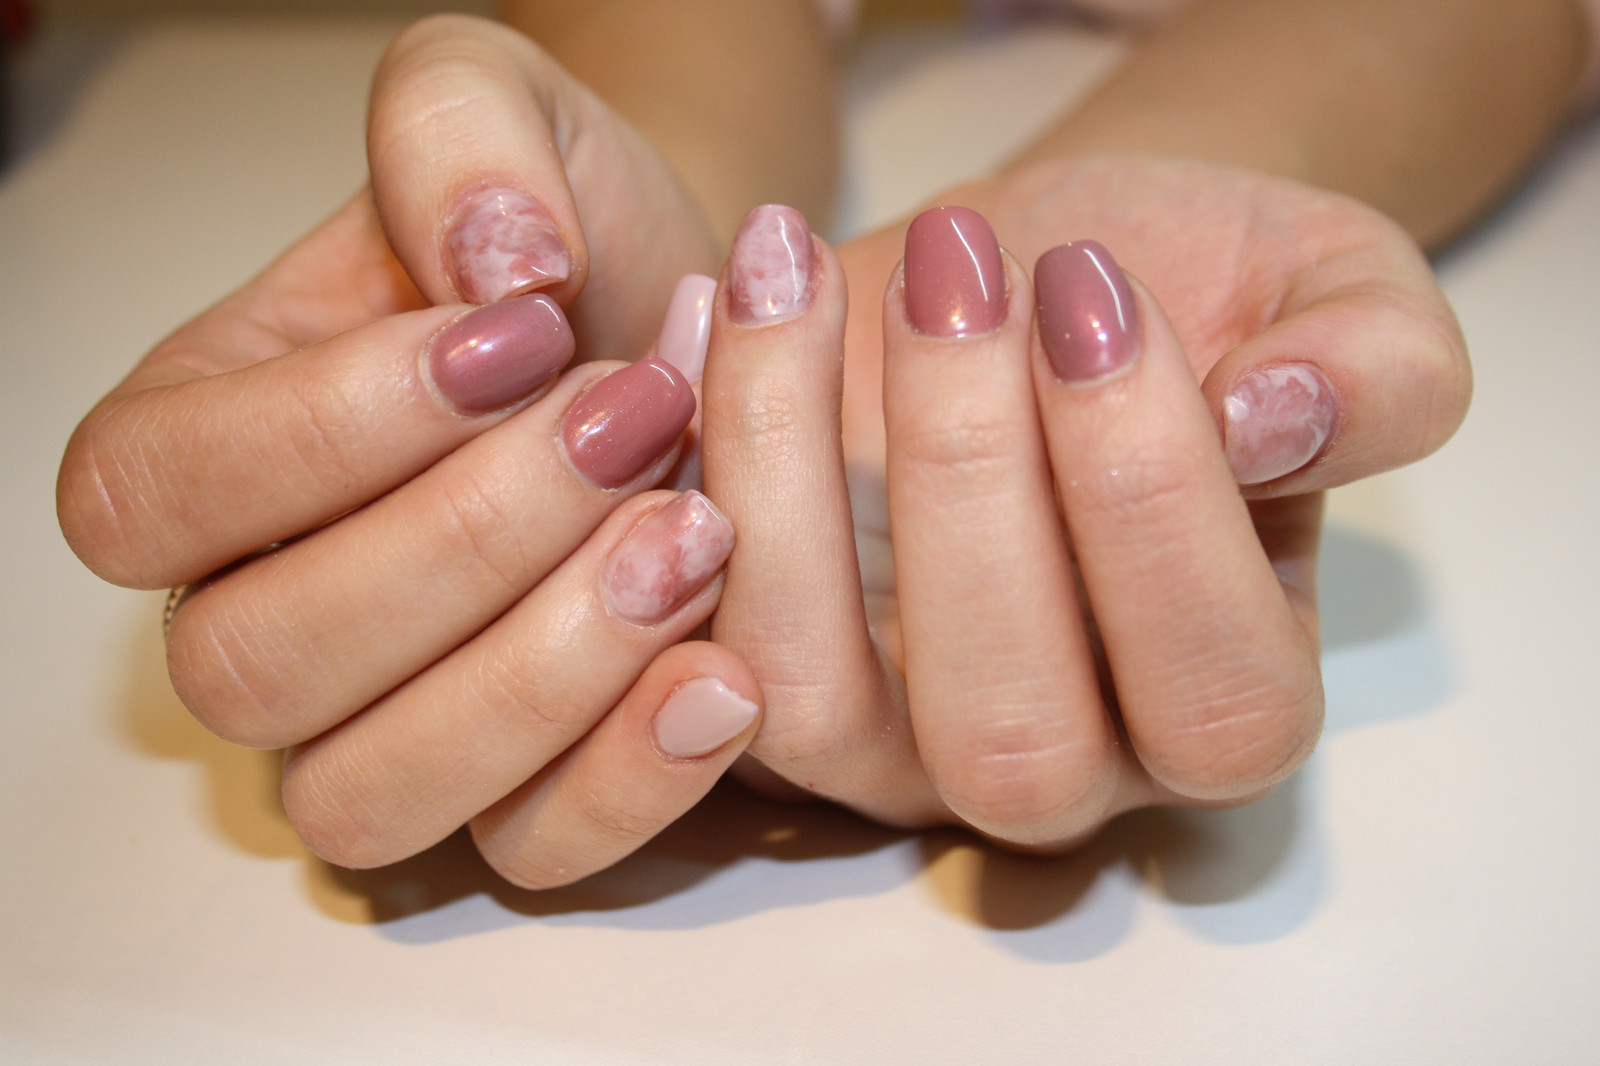 finest ongles gel effet marbre rose with ongle en gel rose